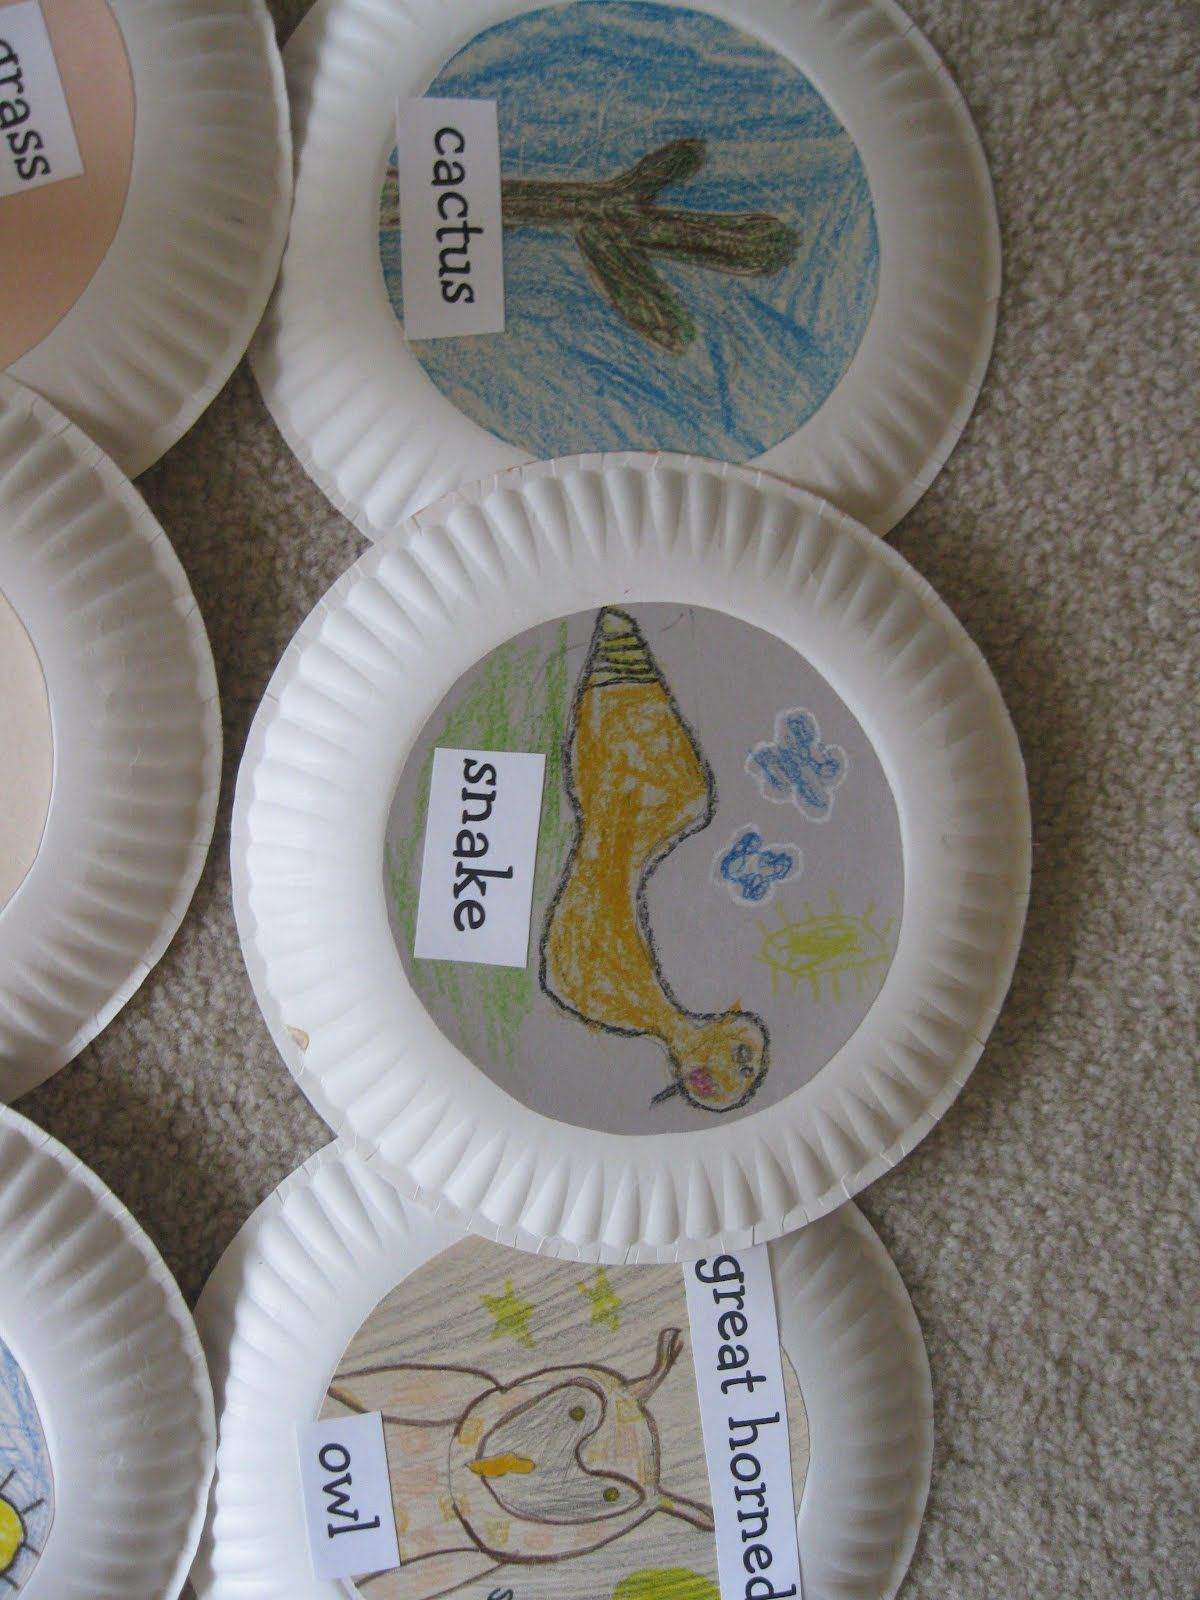 Food Chain Plates With Images